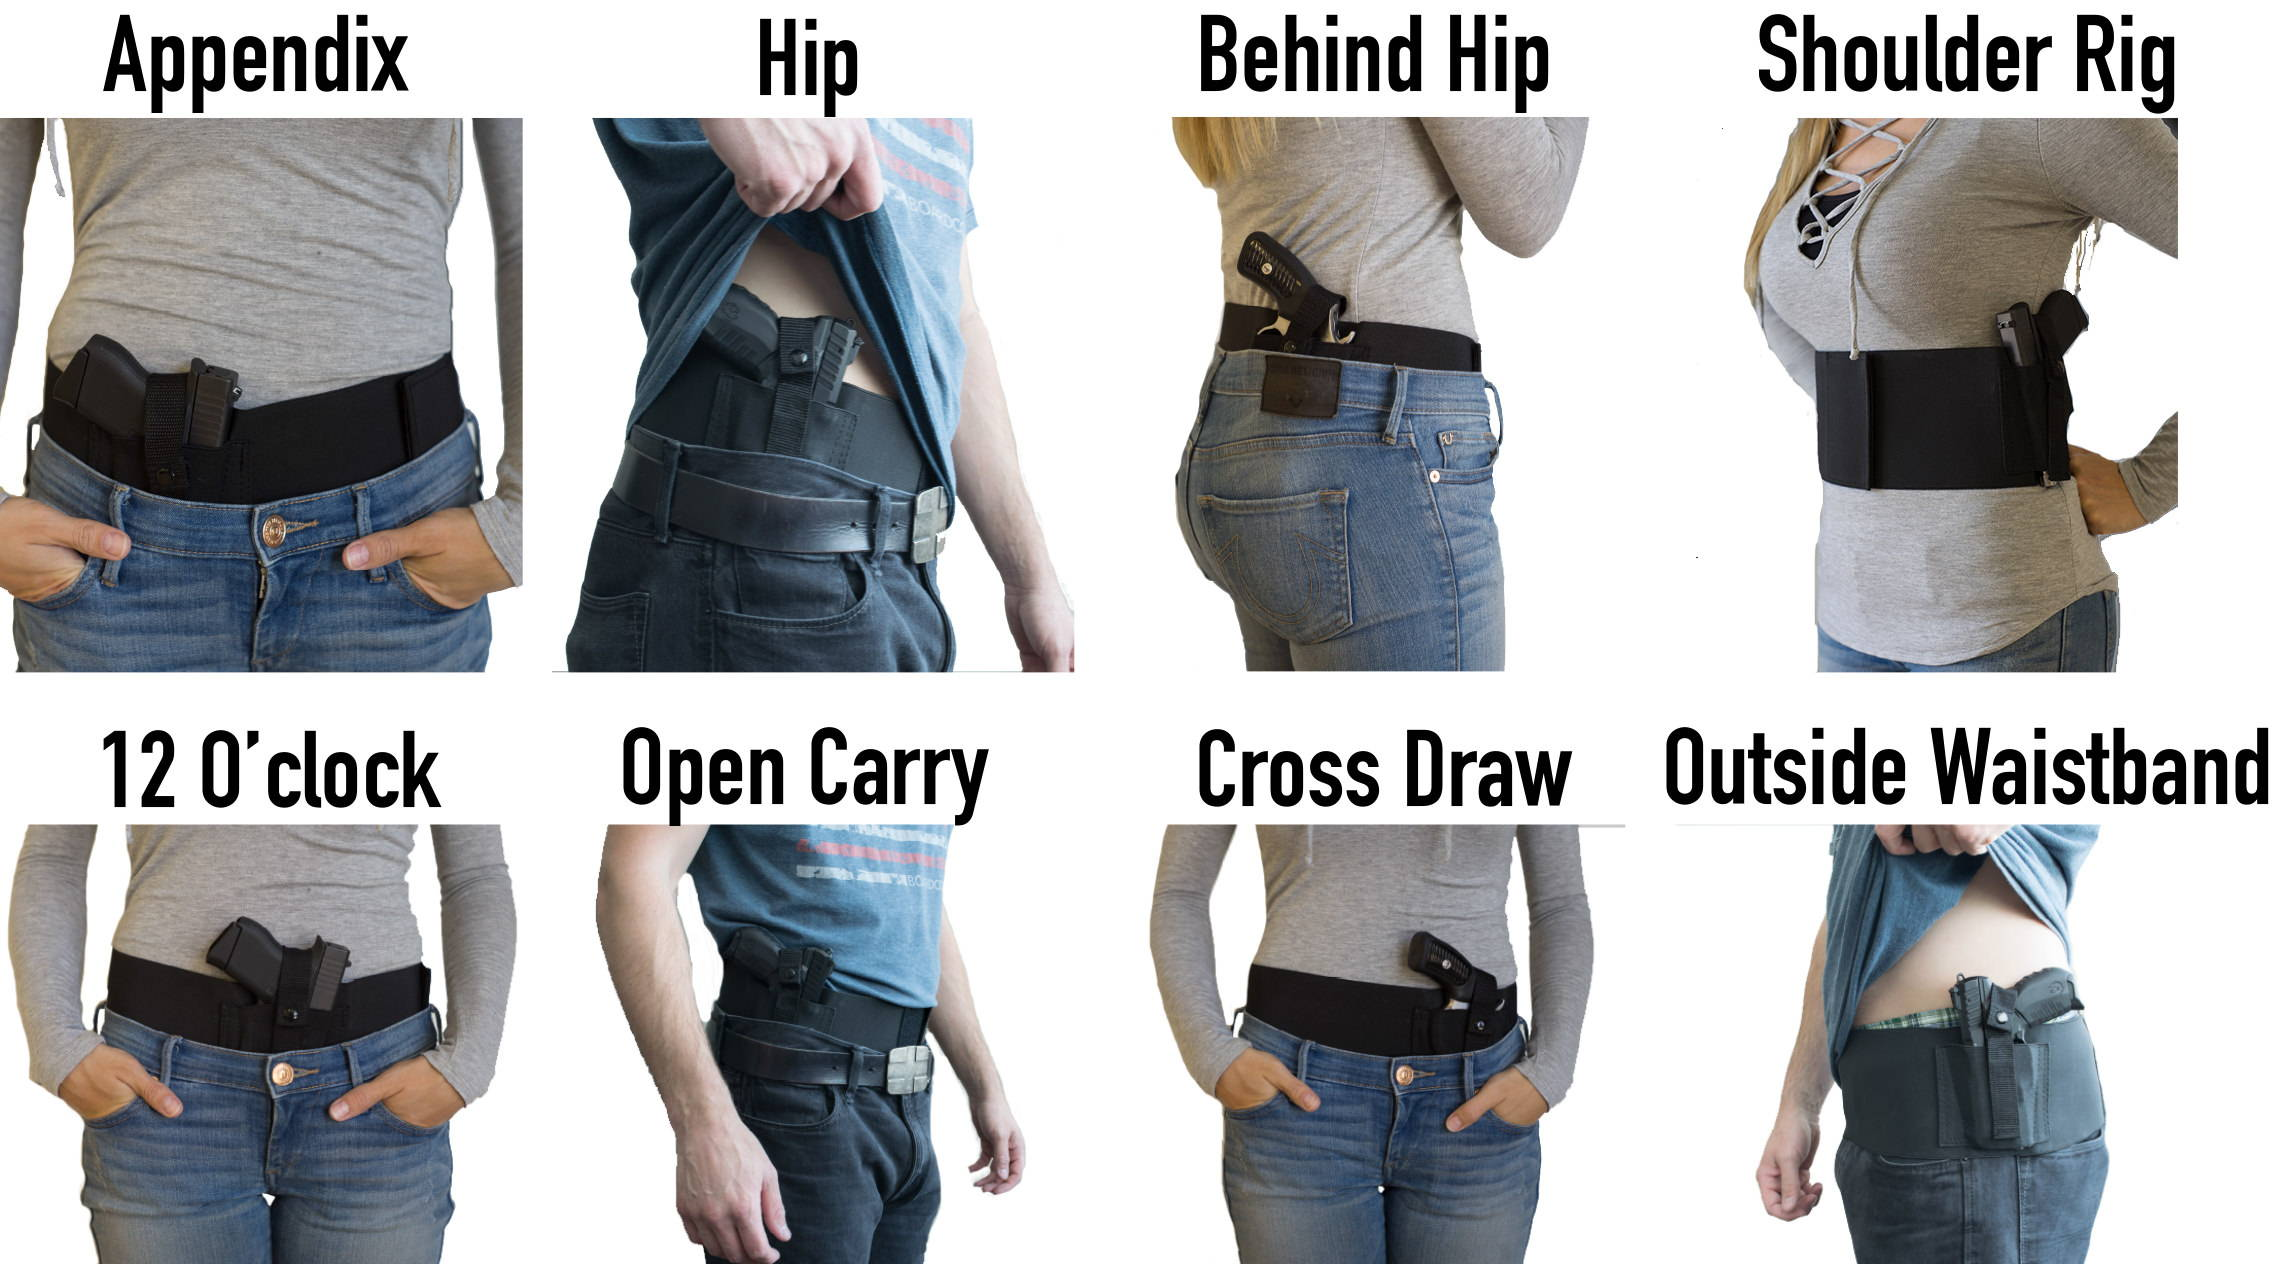 Dinosaurized store| Dragon belly holster | Best belly band holster for women & fat guys